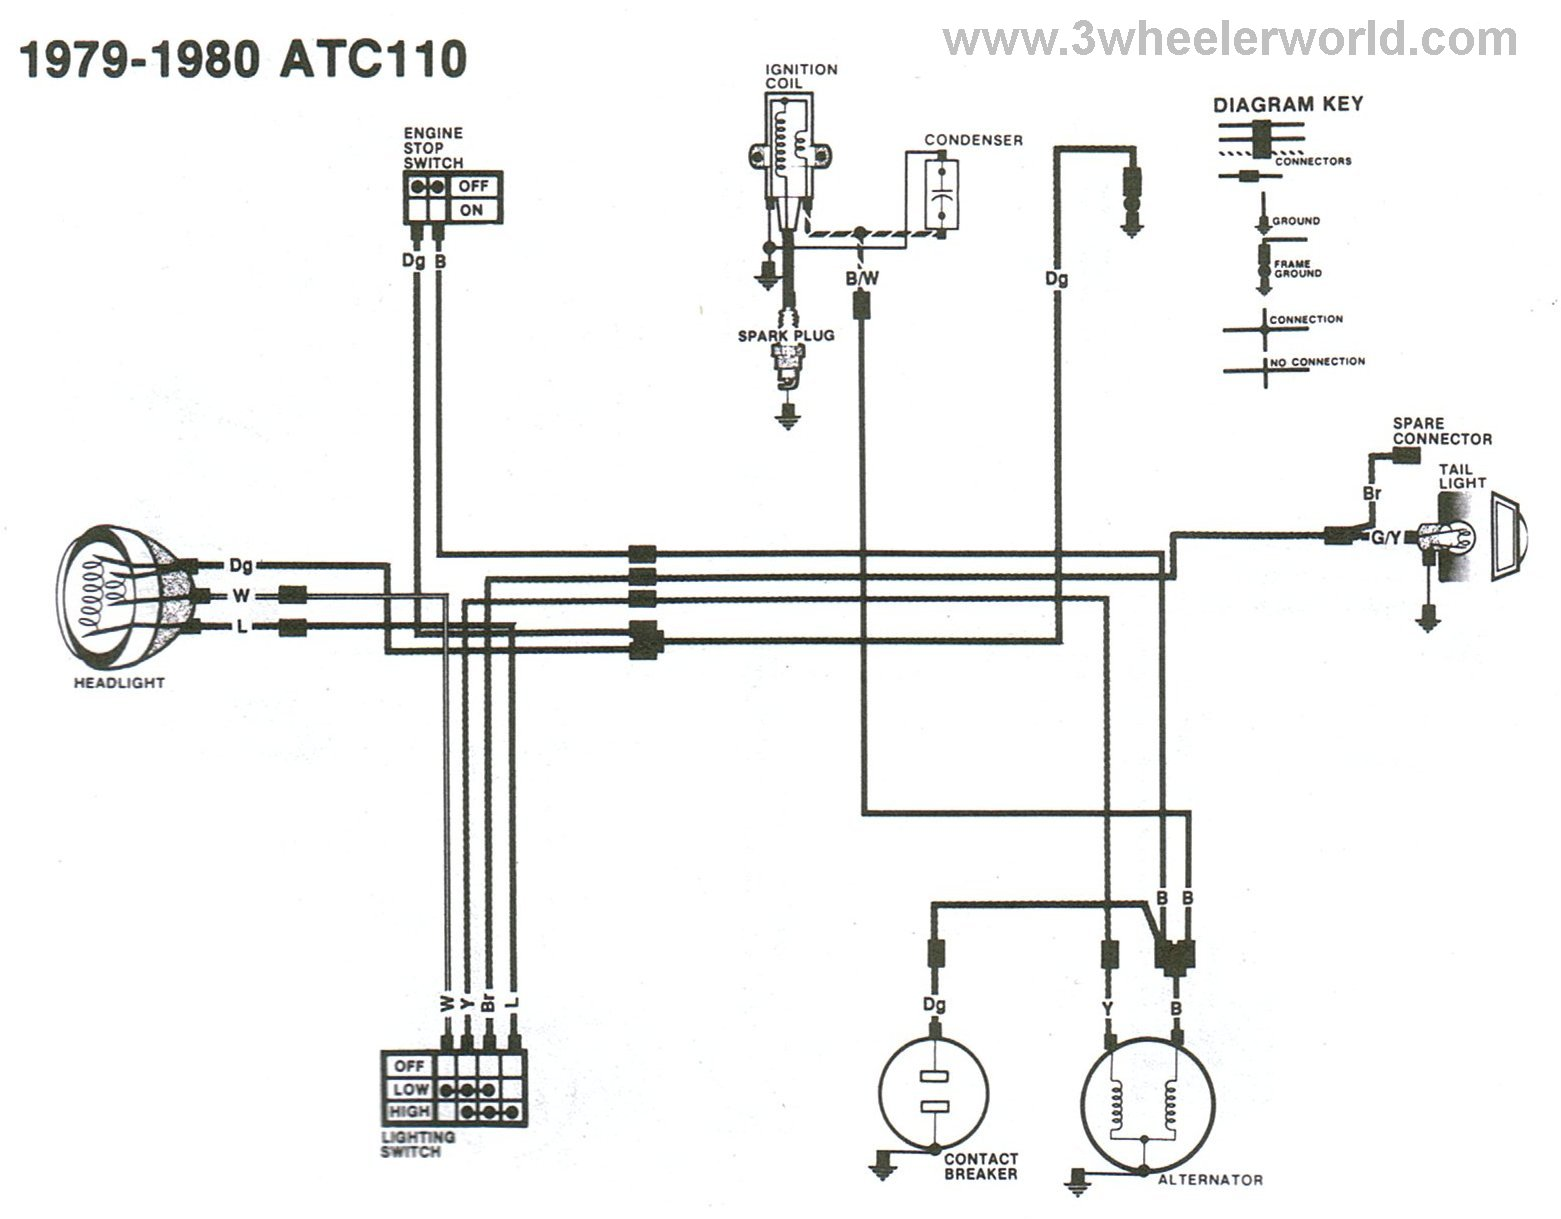 3 wheeler world tech help honda wiring diagrams atc110 1979 thru 1980